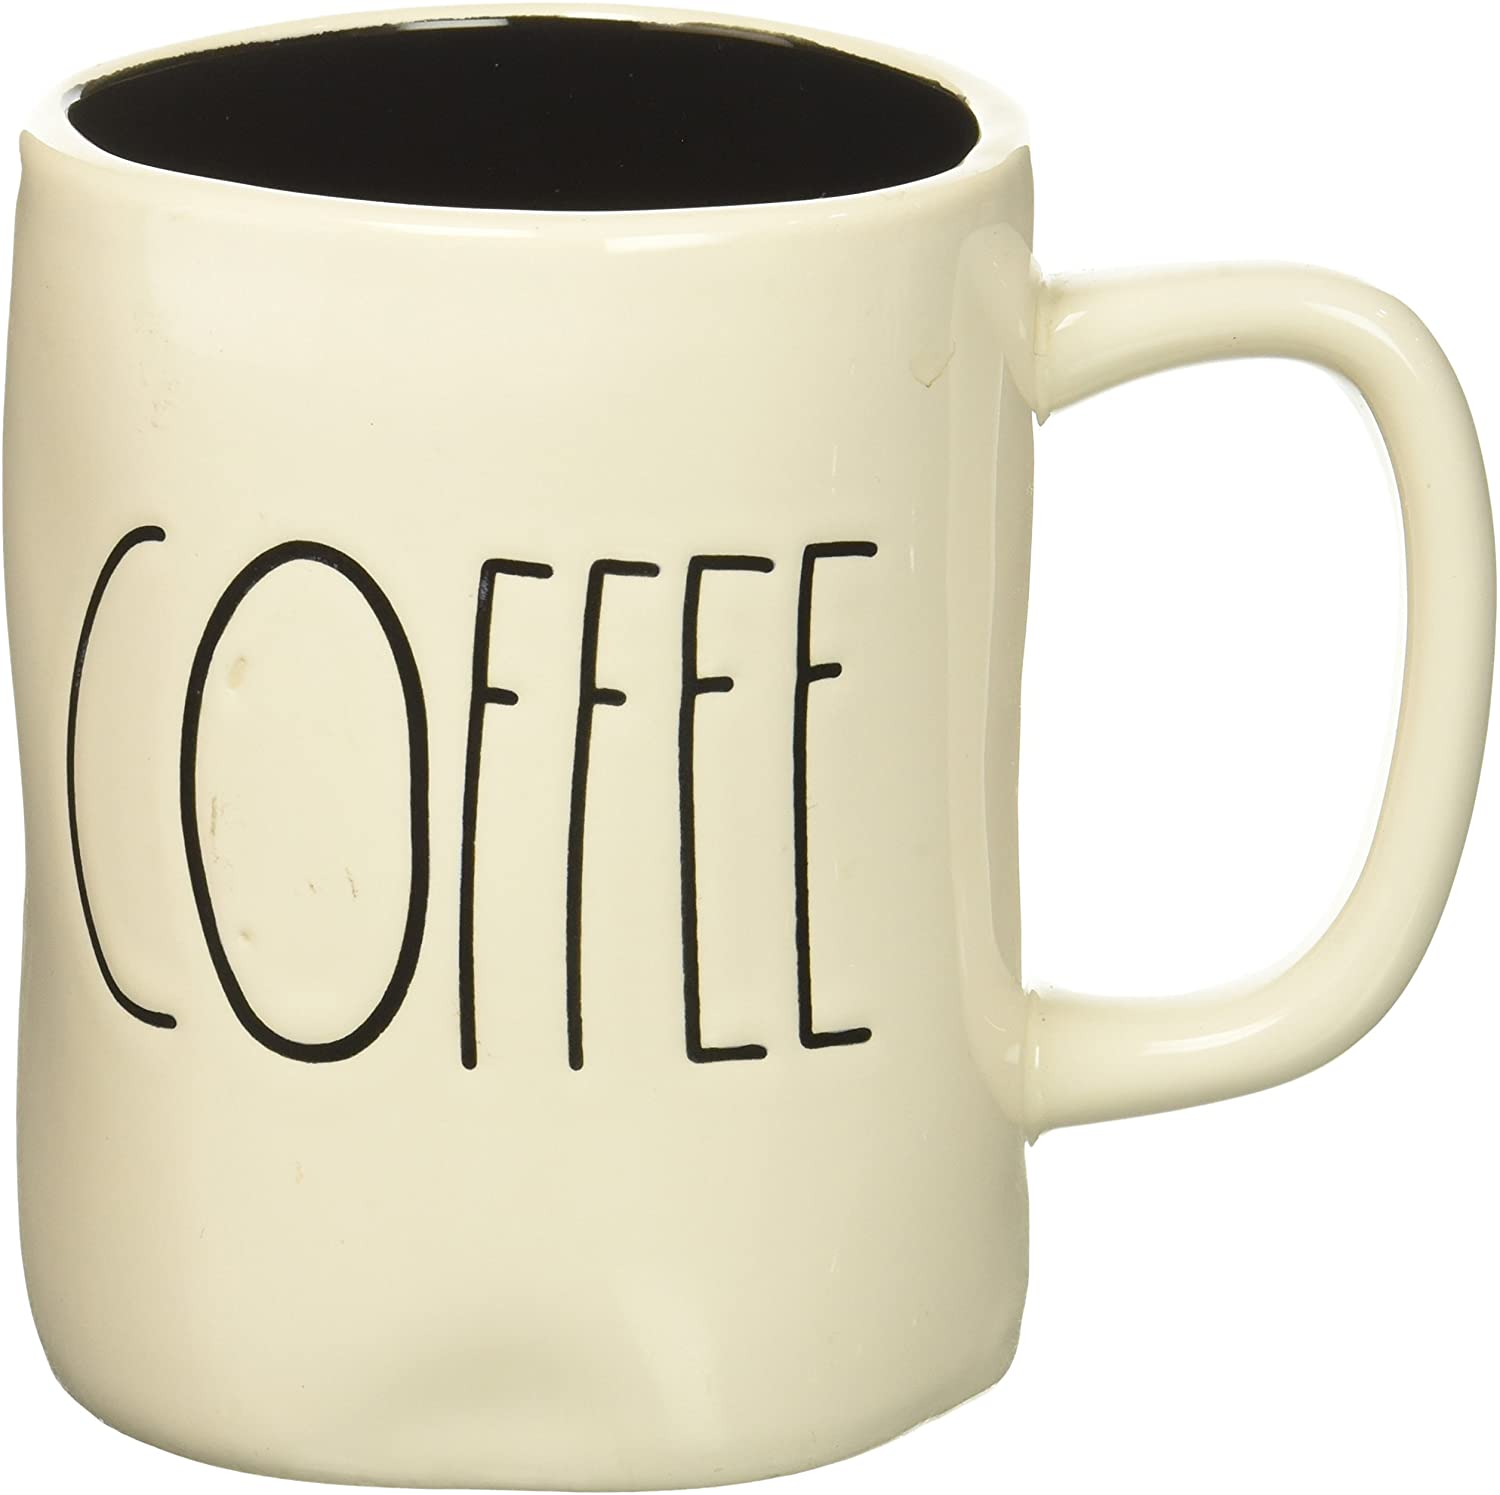 Online: Coffee Hour